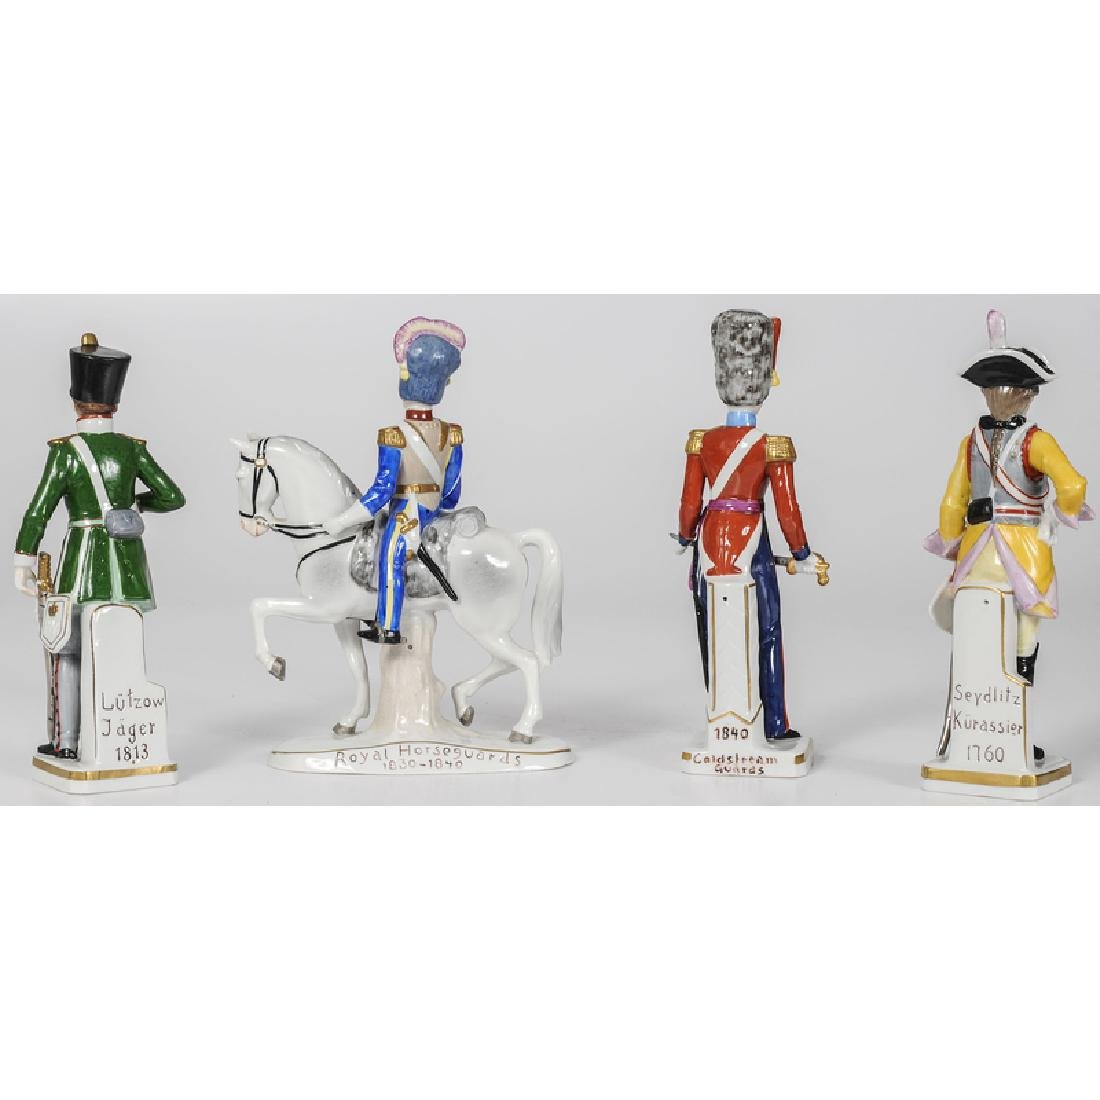 Sitzendorf Porcelain Military Figurines - 2